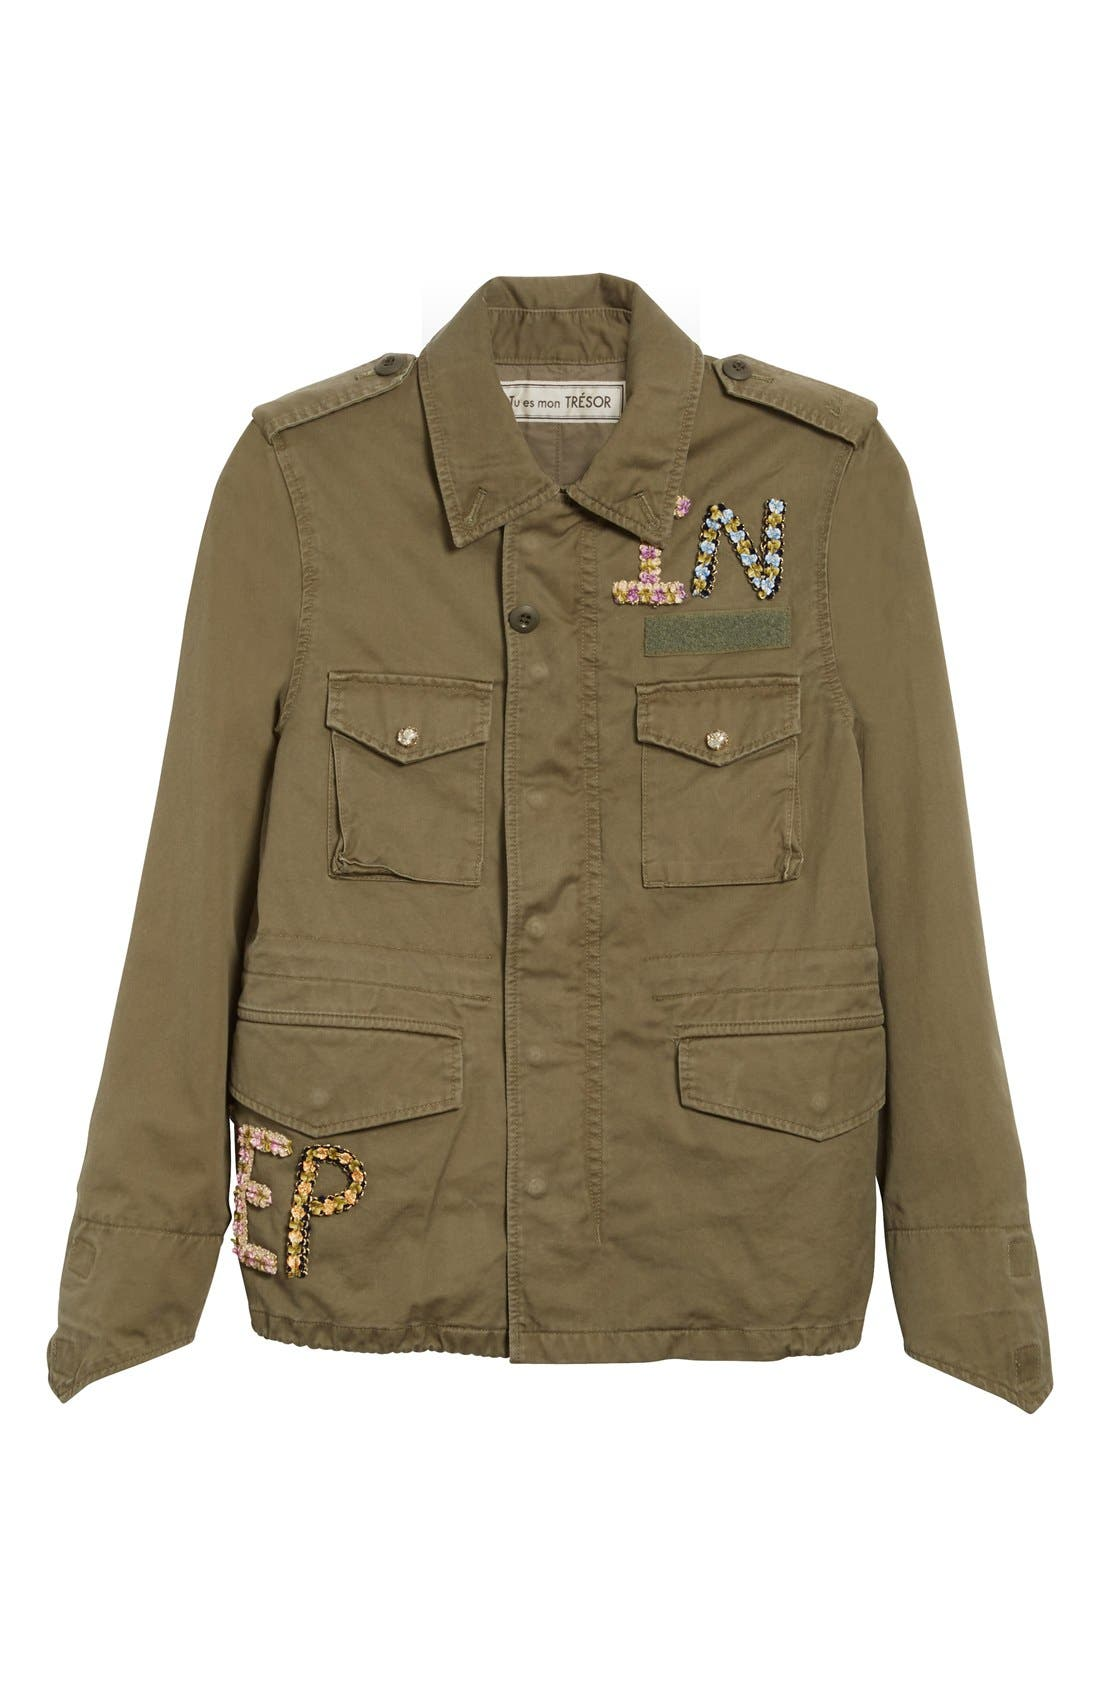 'The End' Embellished Military Jacket,                             Alternate thumbnail 5, color,                             250